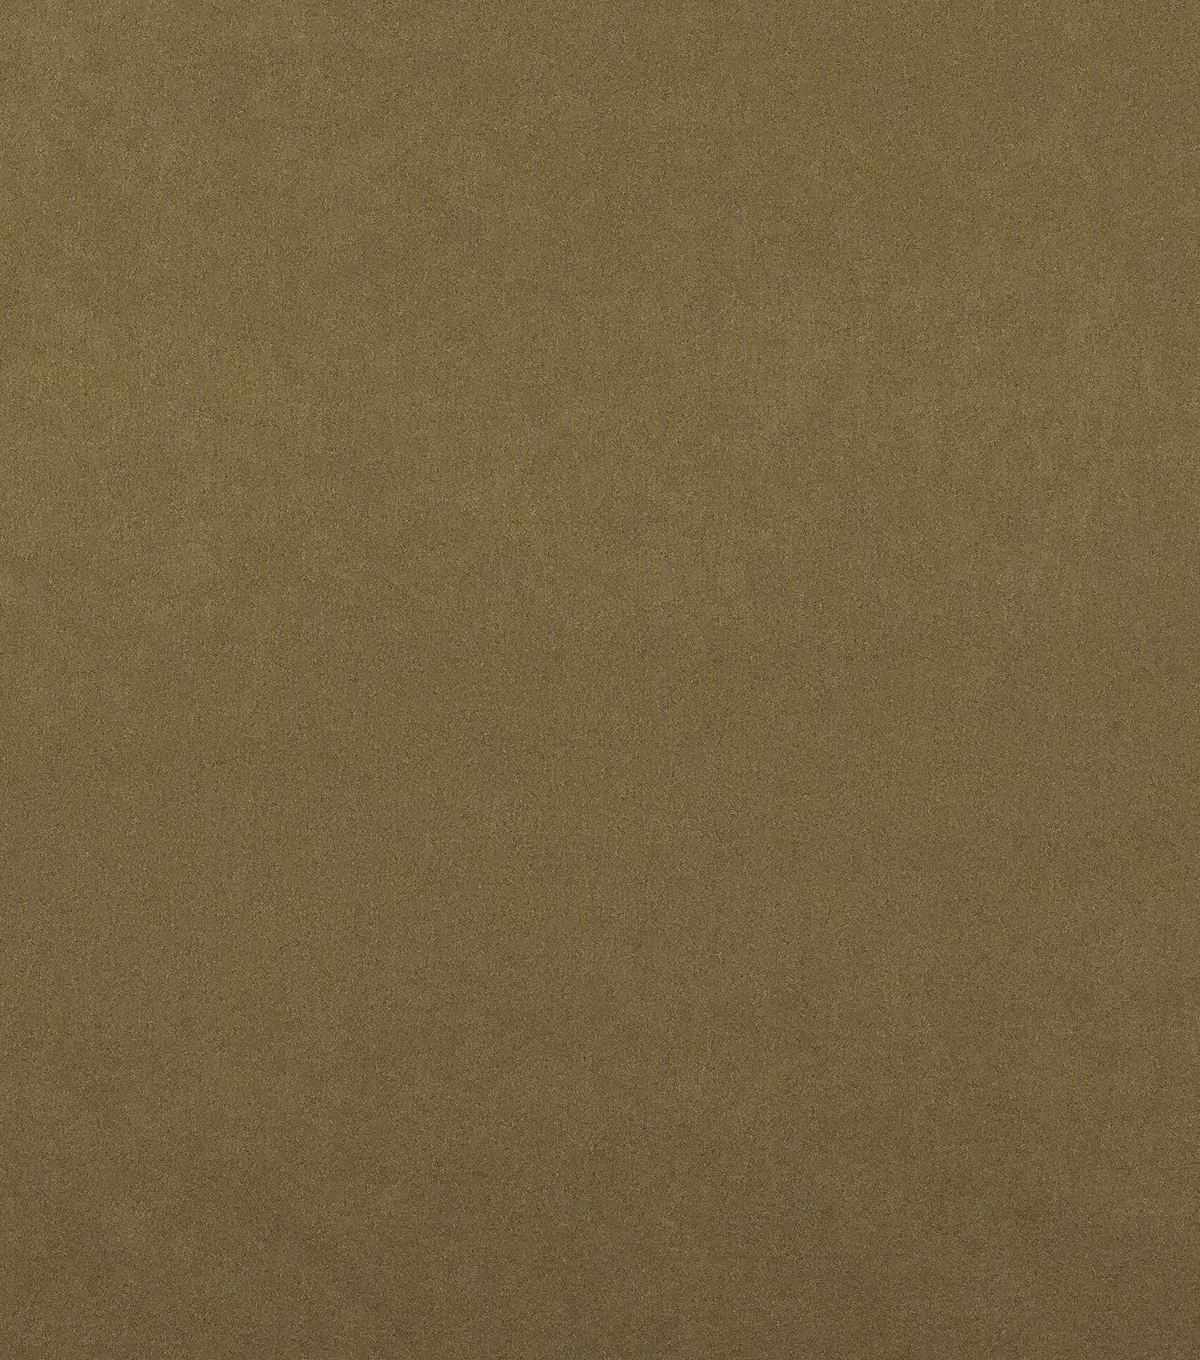 Home Decor 8\u0022x8\u0022 Fabric Swatch-Elite New Suede Khaki